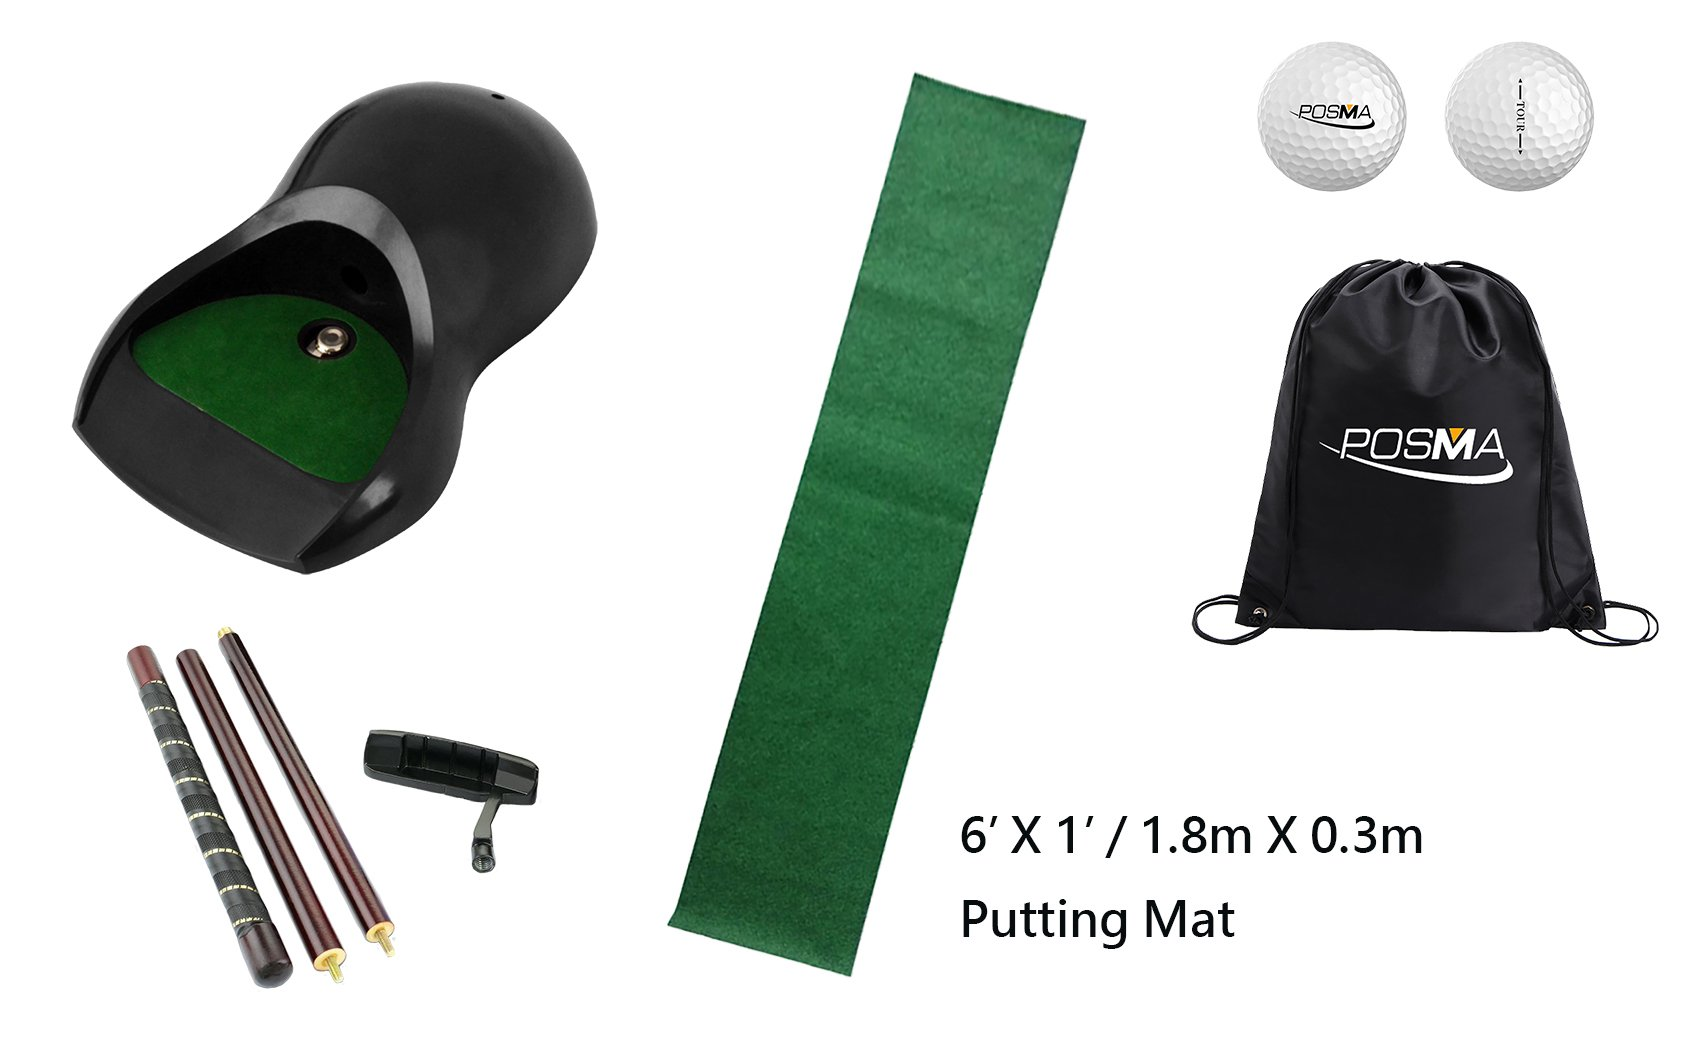 Posma PG160D Golf Putter Training Putting Trainer Bundle Gift Set with Kickback Putt Cup, 6ft x 1ft Putt Mat, Detachable 4-section putter, 2pcs Posma Tour Ball and Posma Cinch Sack Carry Bag